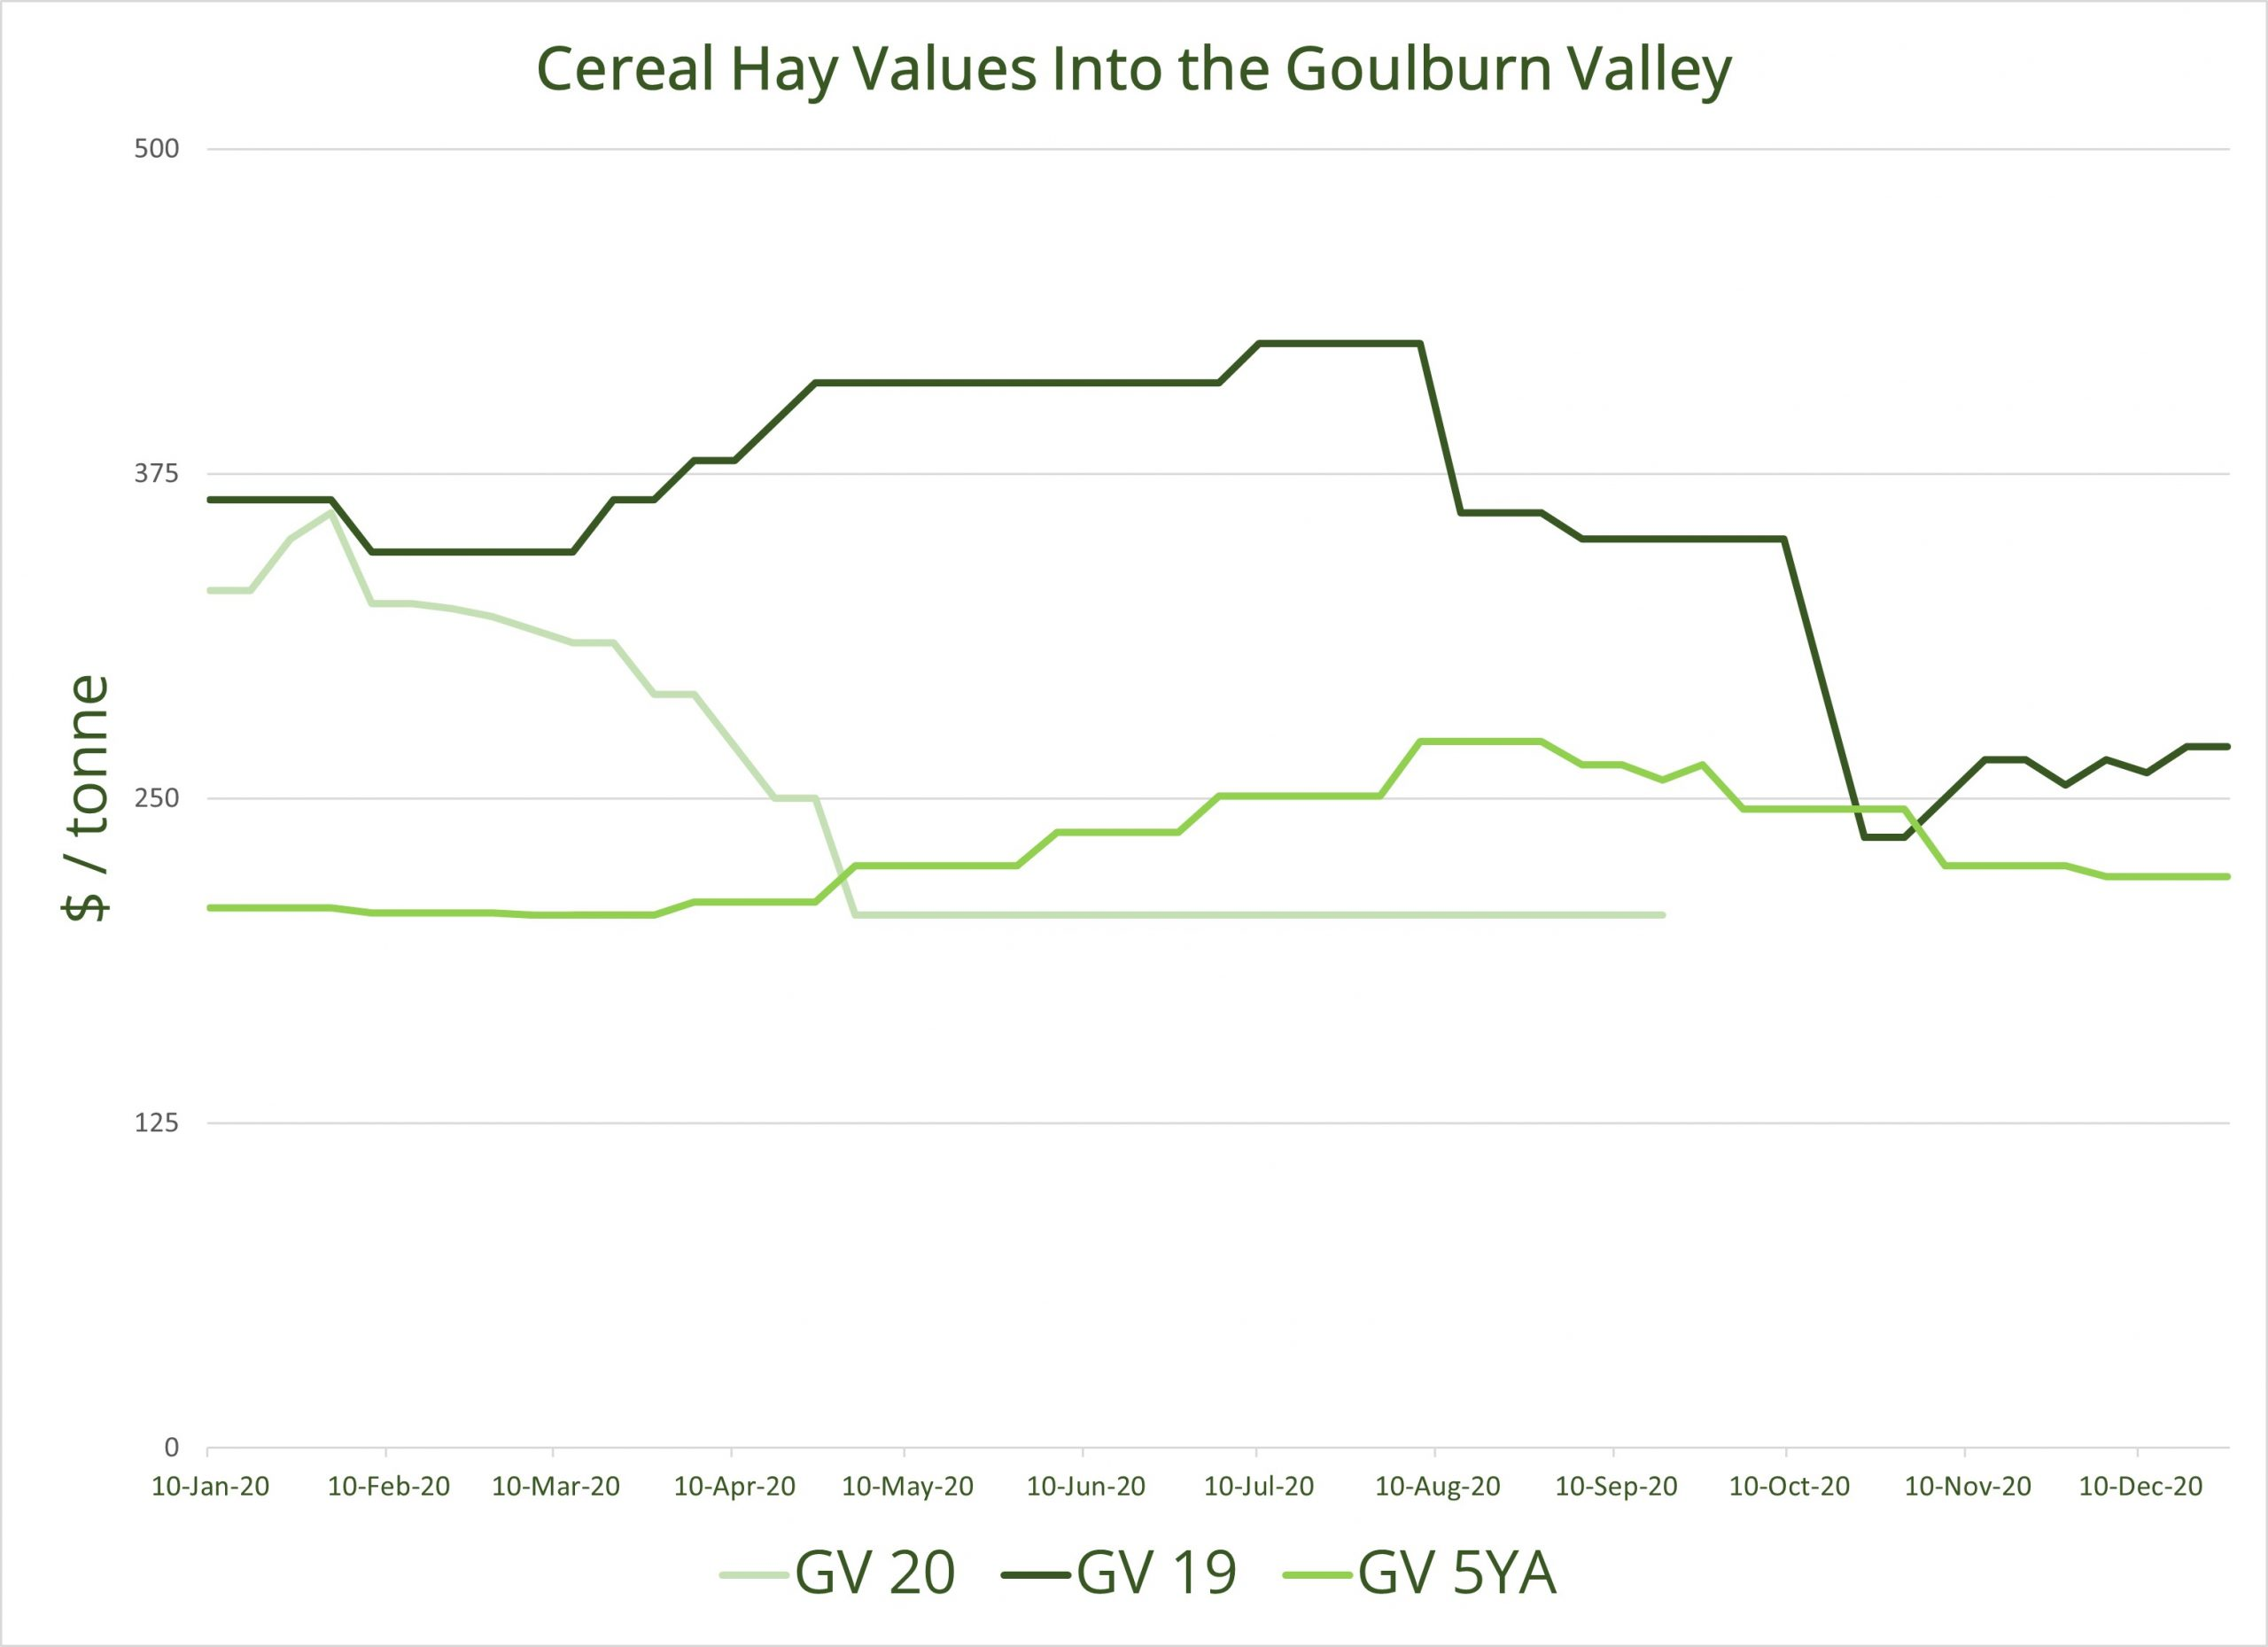 Cereal Hay Values Into the Goulburn Valley 21.09.2020